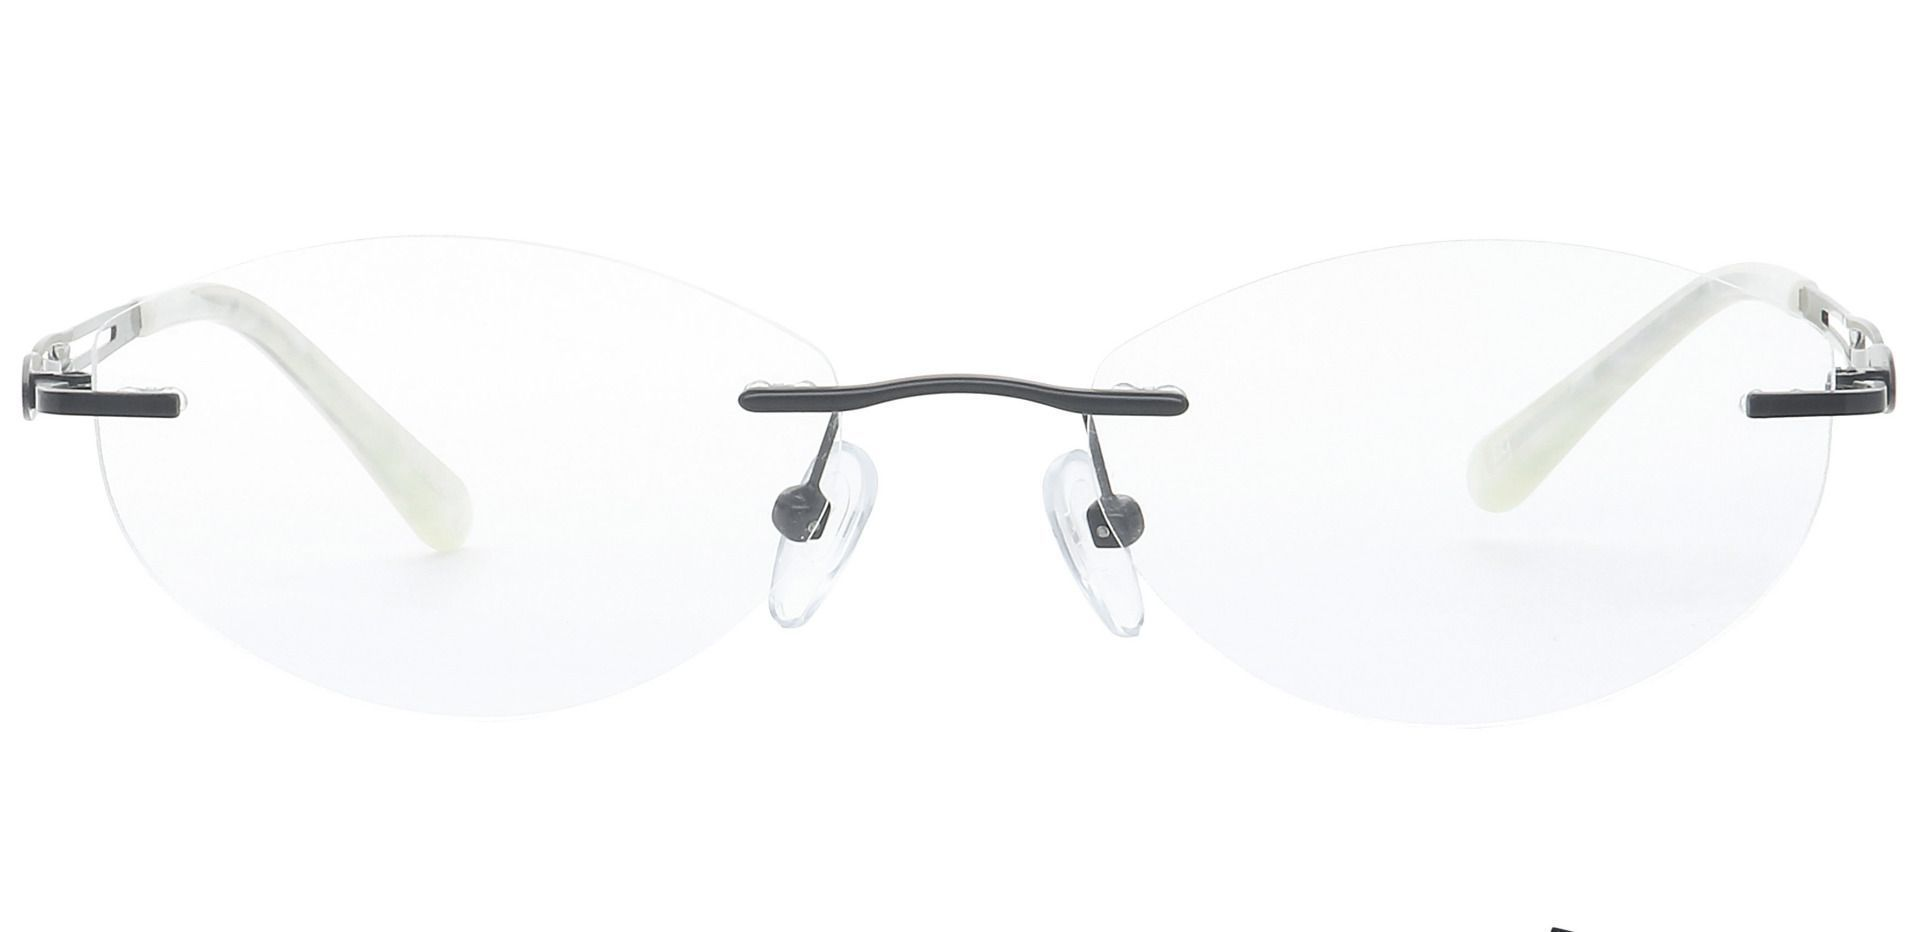 Fairy Rimless Blue Light Blocking Glasses - Black